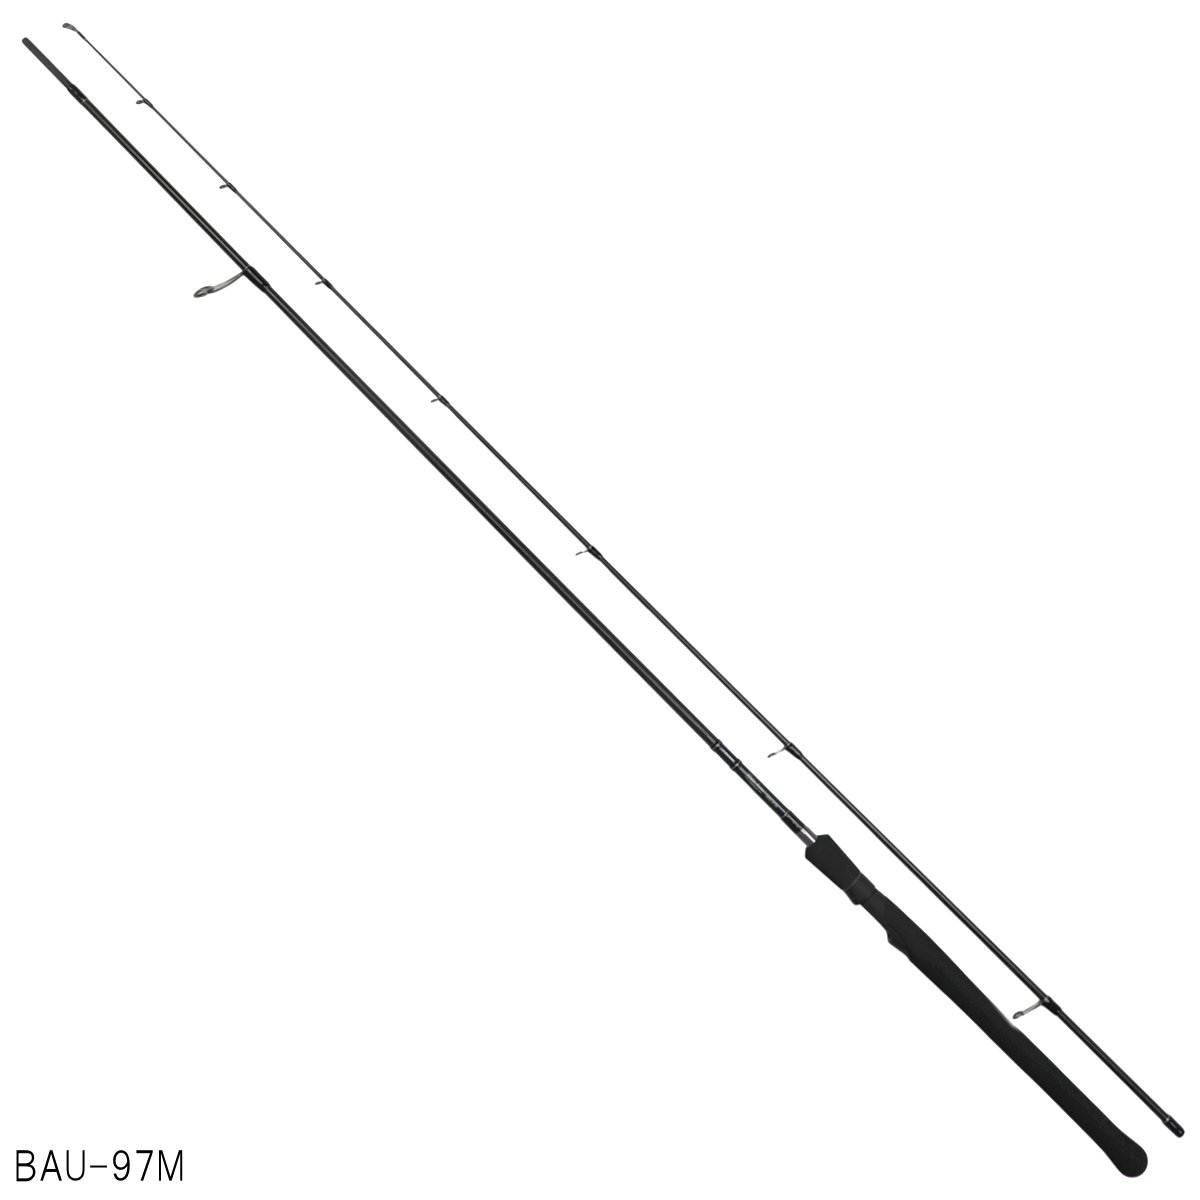 ãAIMS Black Arrow Unlimited BAU-97Mãã®ç»åæ¤ç´¢çµæ